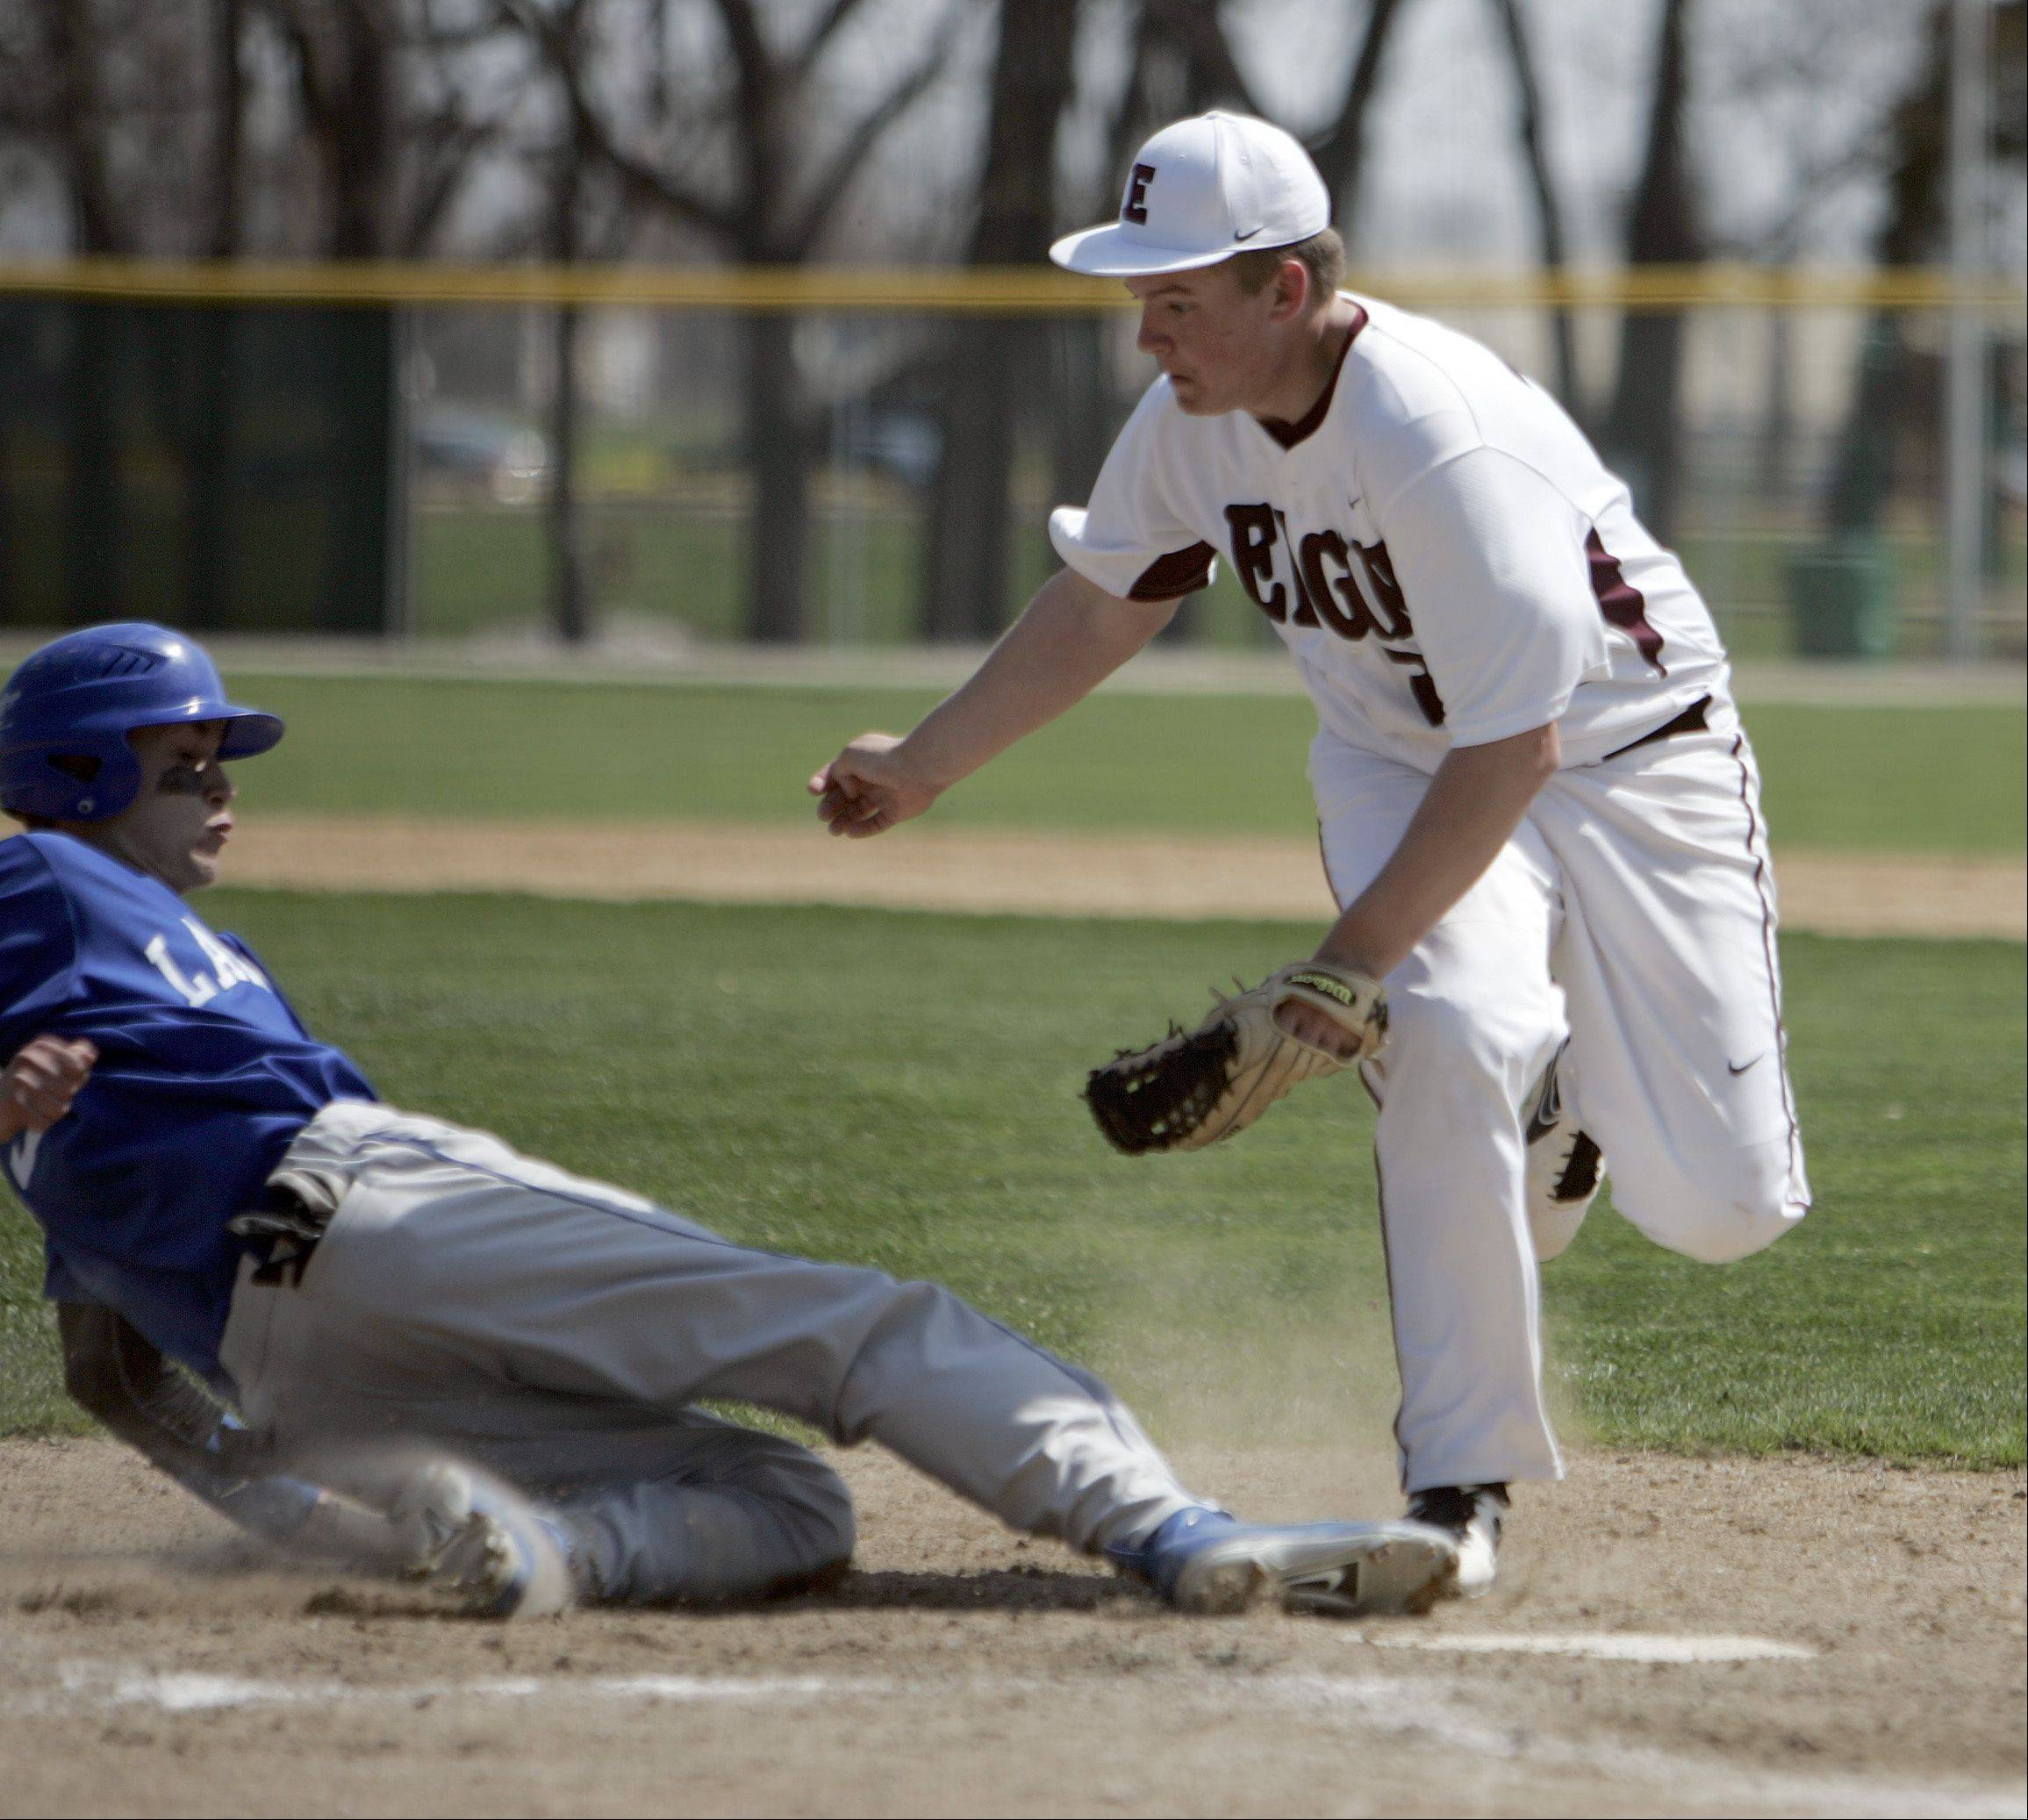 Elgin's Nicholas Turner tries to put the tag on Larkin's John Jowaski Saturday at Trout Park.